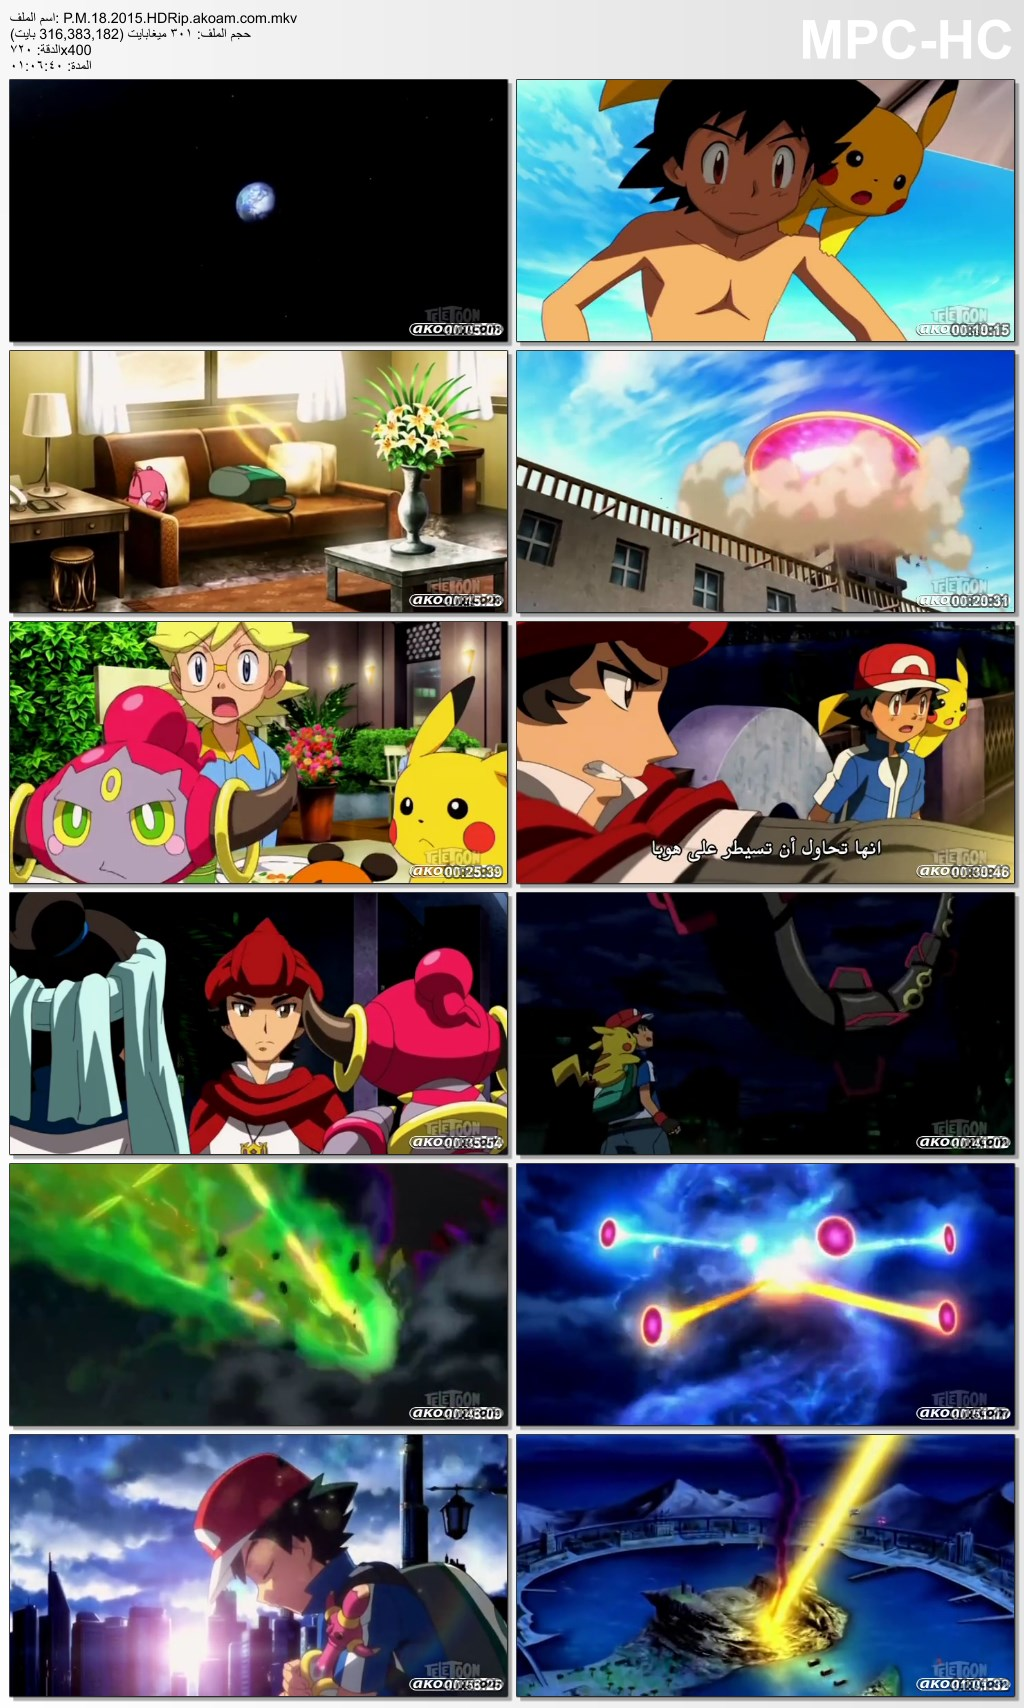 Pokemon Movie 18 Hoopa and the Clash of Ages,Pokemon Movie 18 Hoopa and the Clash of Ages 2015,الانمييشن